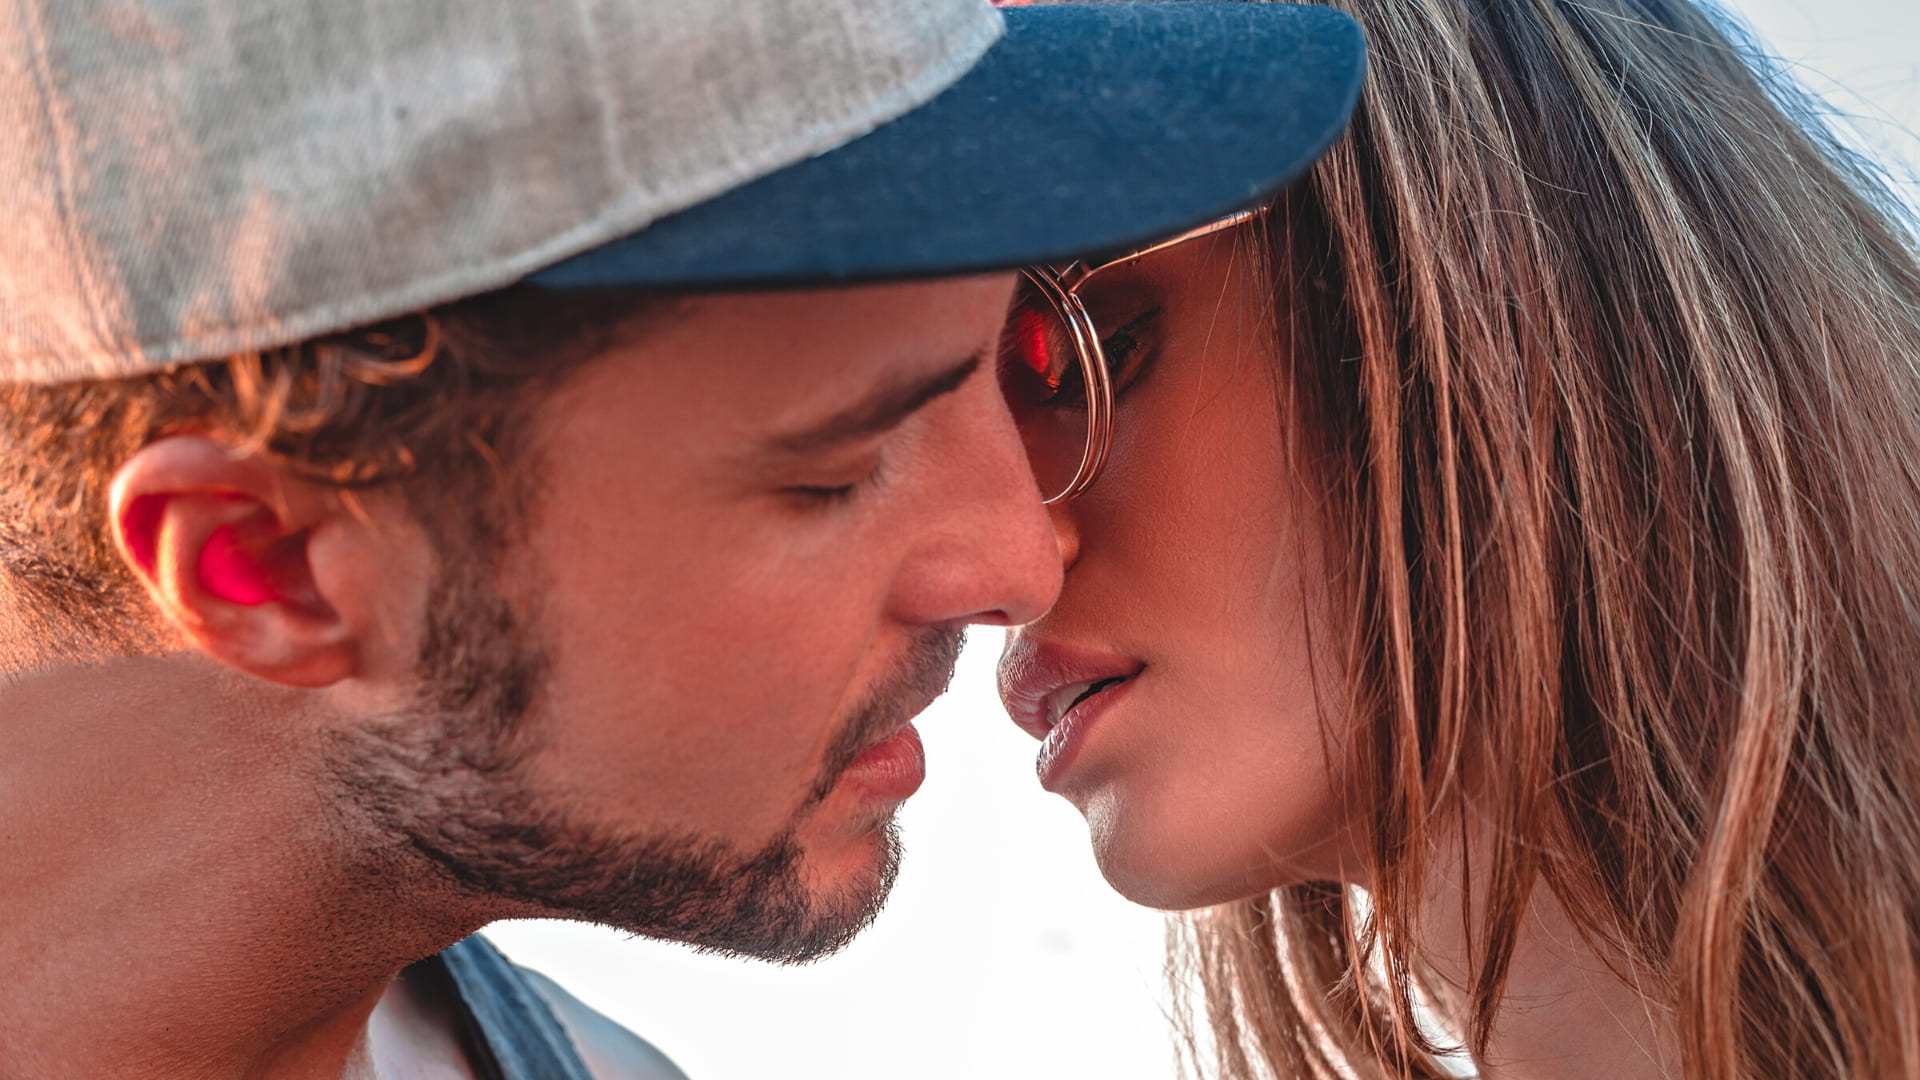 Kissing seen images